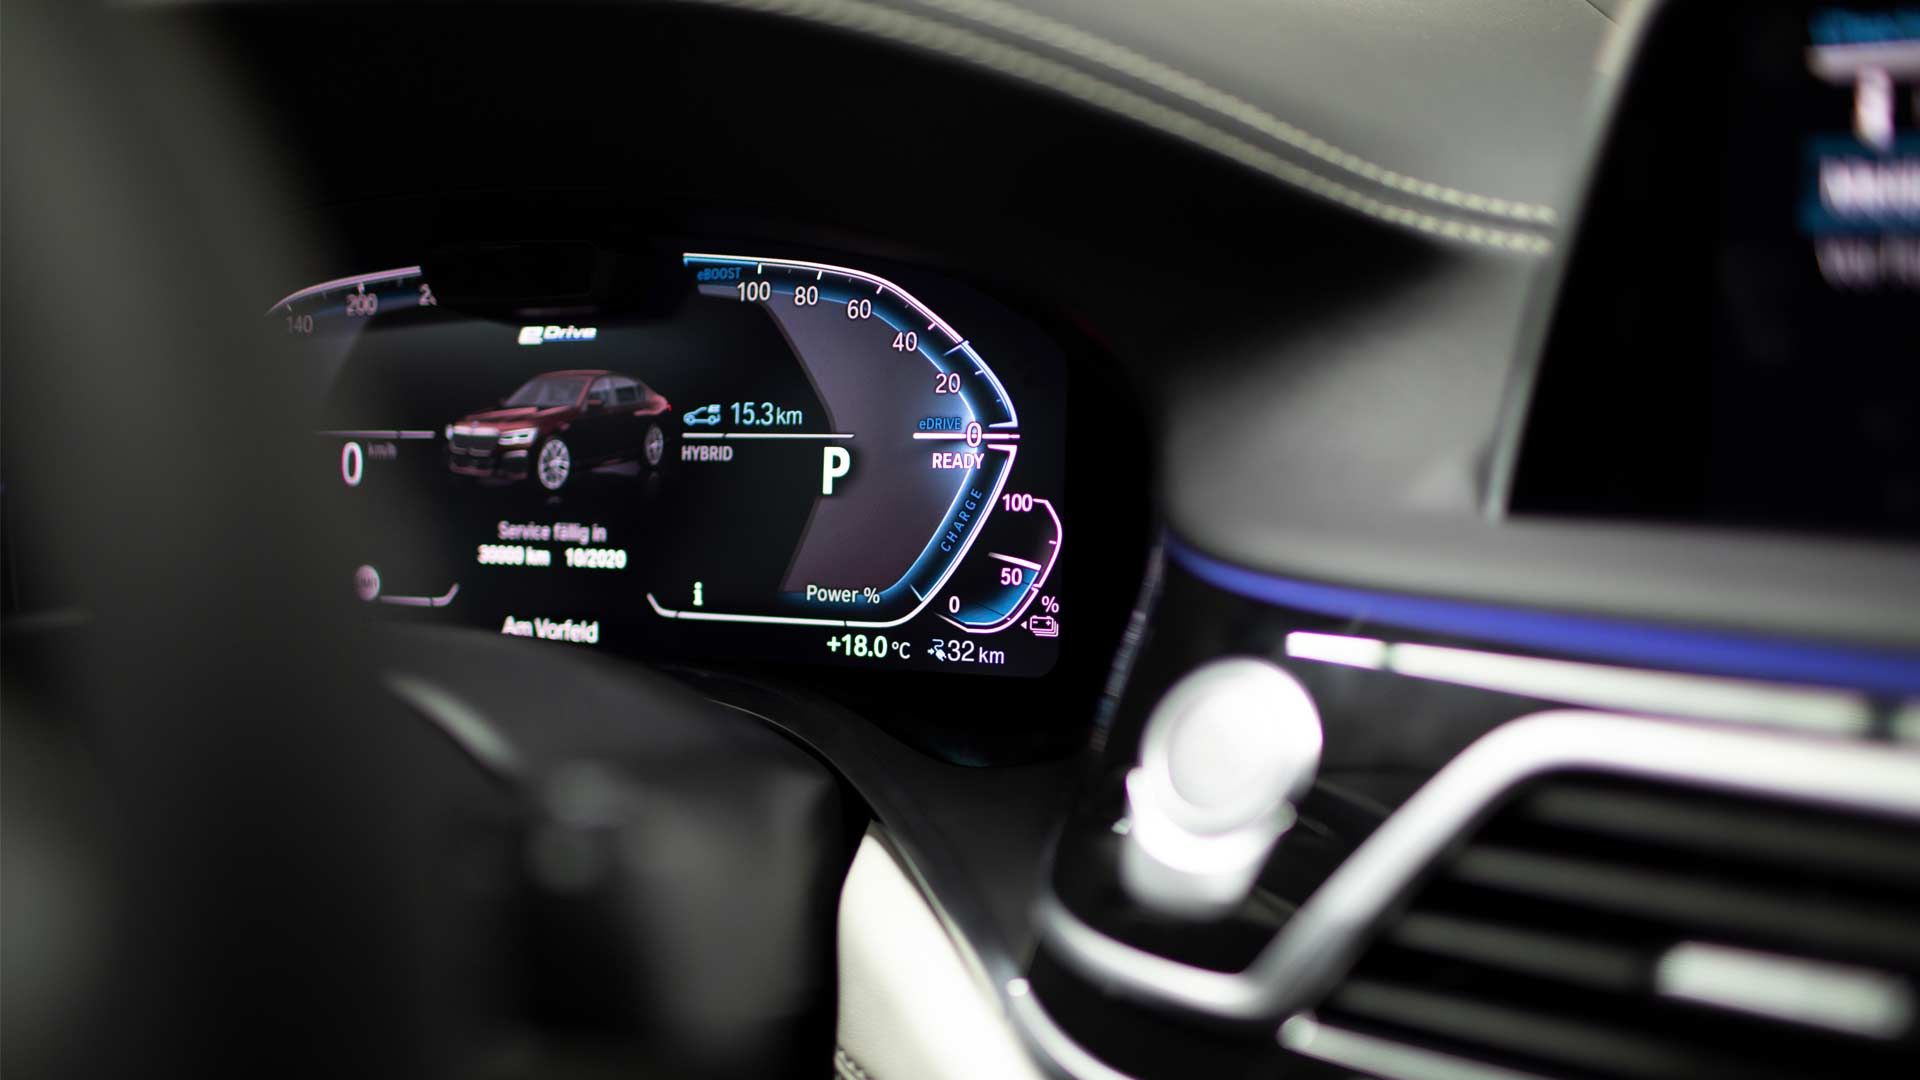 2020-BMW-745le-Plug-In-Hybrid-Interior-Instrument-Cluster